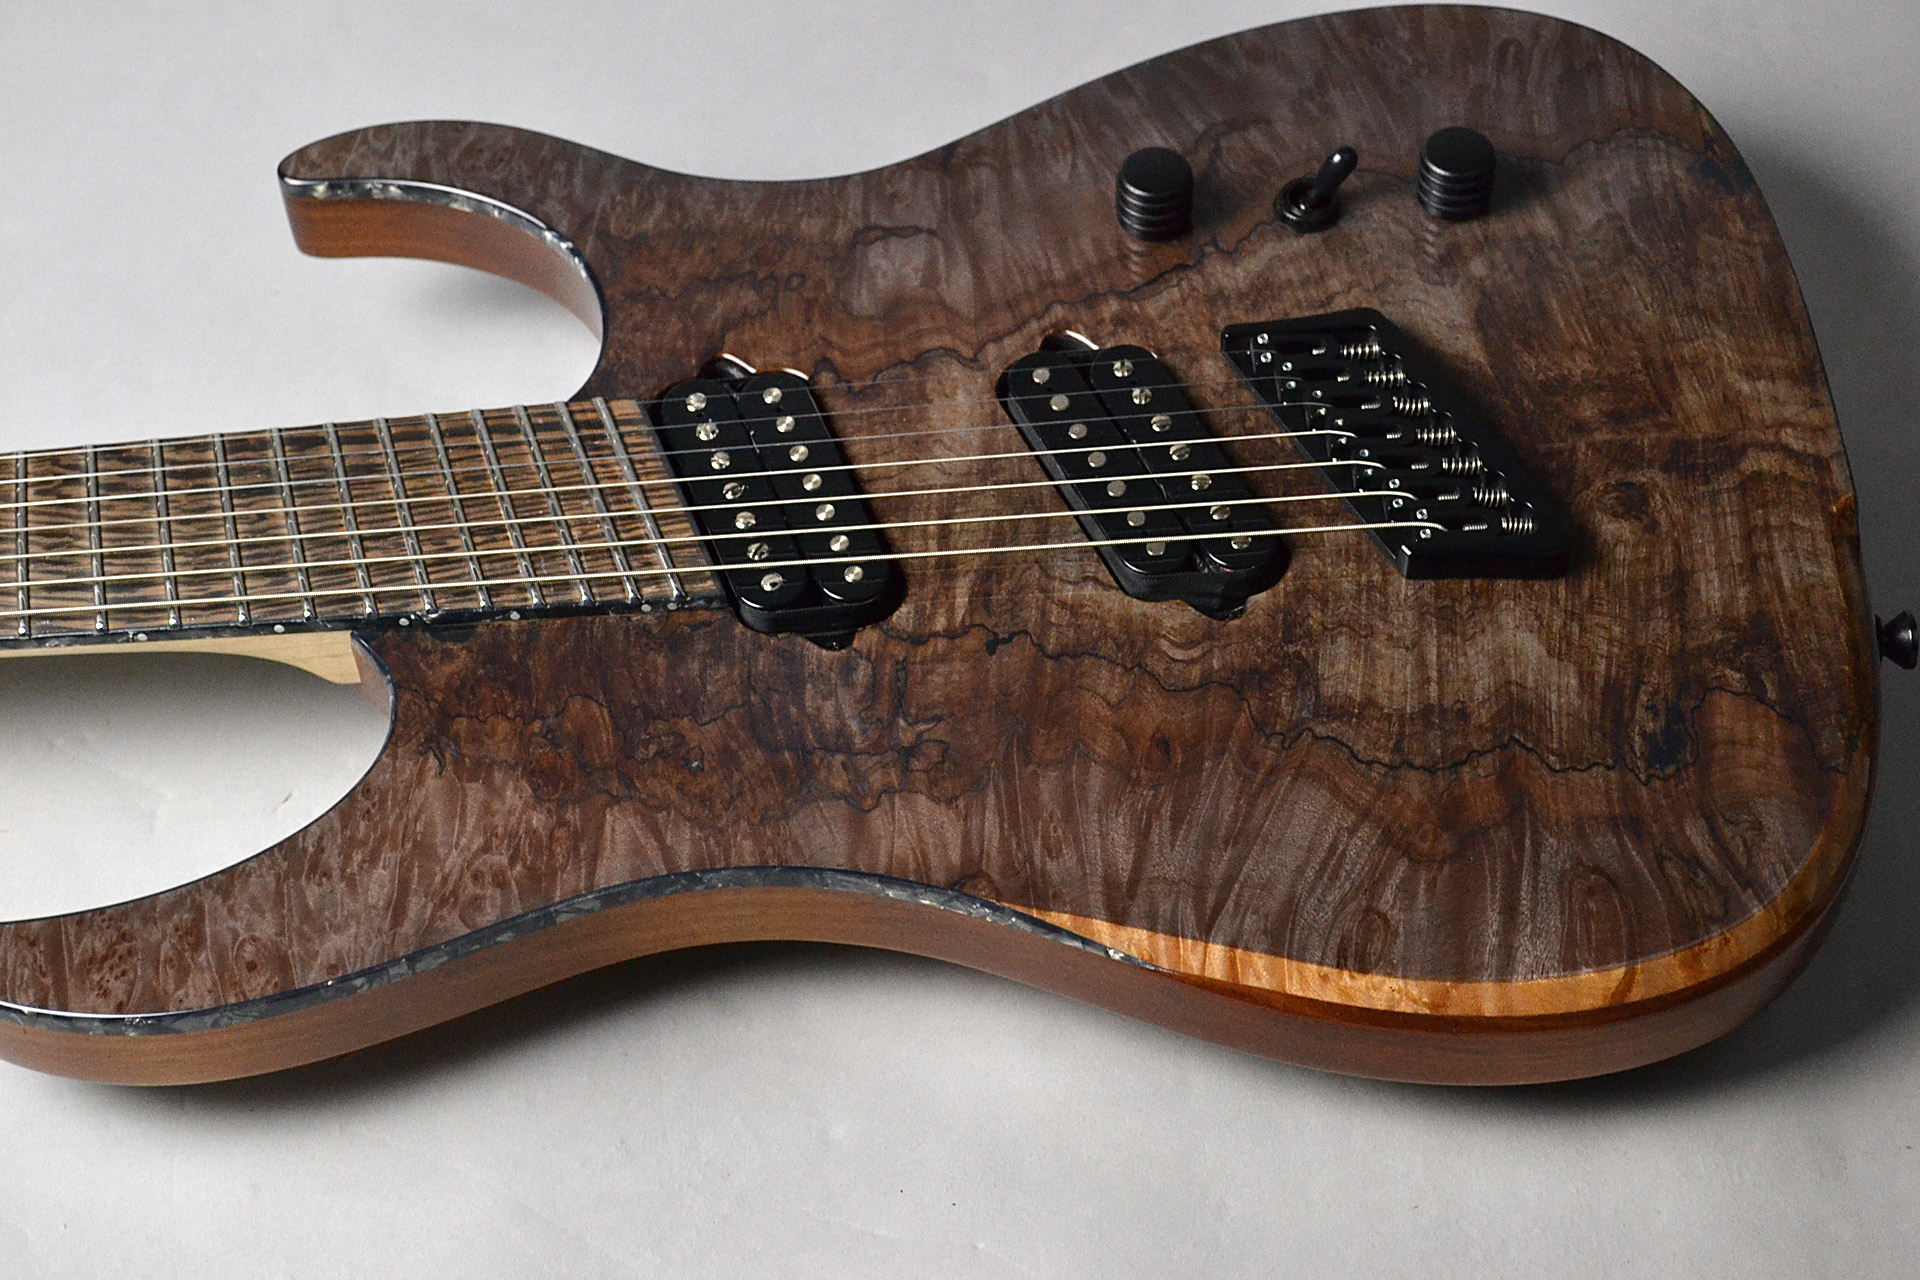 Hypemacine 7 Spalted Maple Topの全体画像(縦)